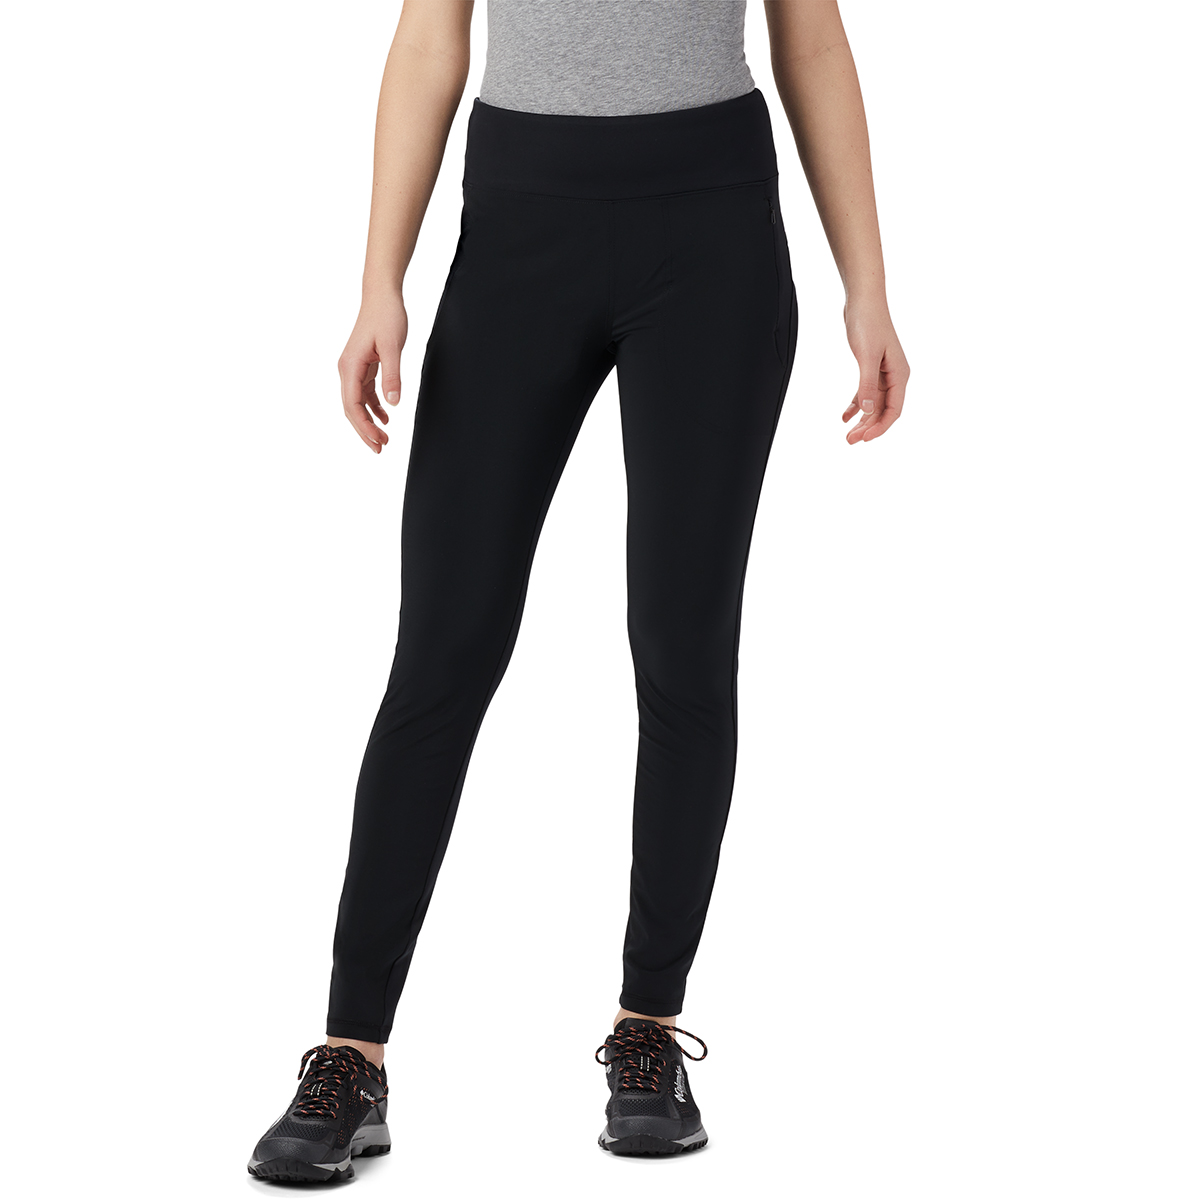 Columbia Women's Place To Place Highrise Legging - Black, S